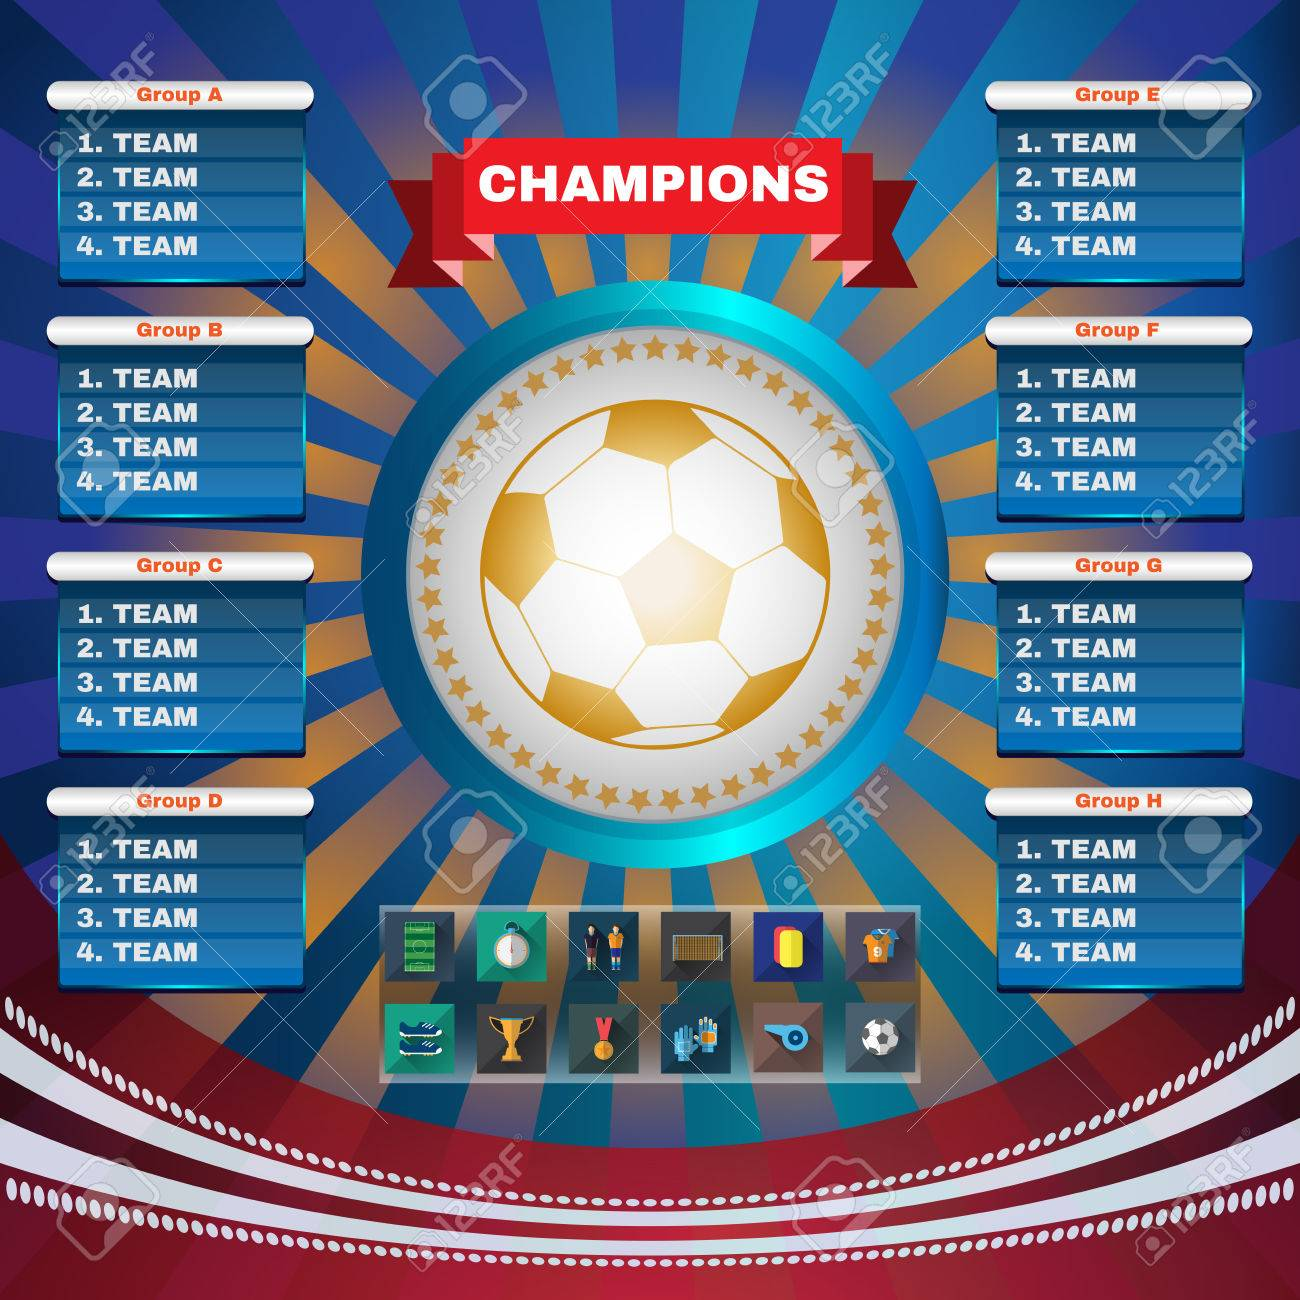 Football Champions  Flyer Soccer Groups and Teams Statistics